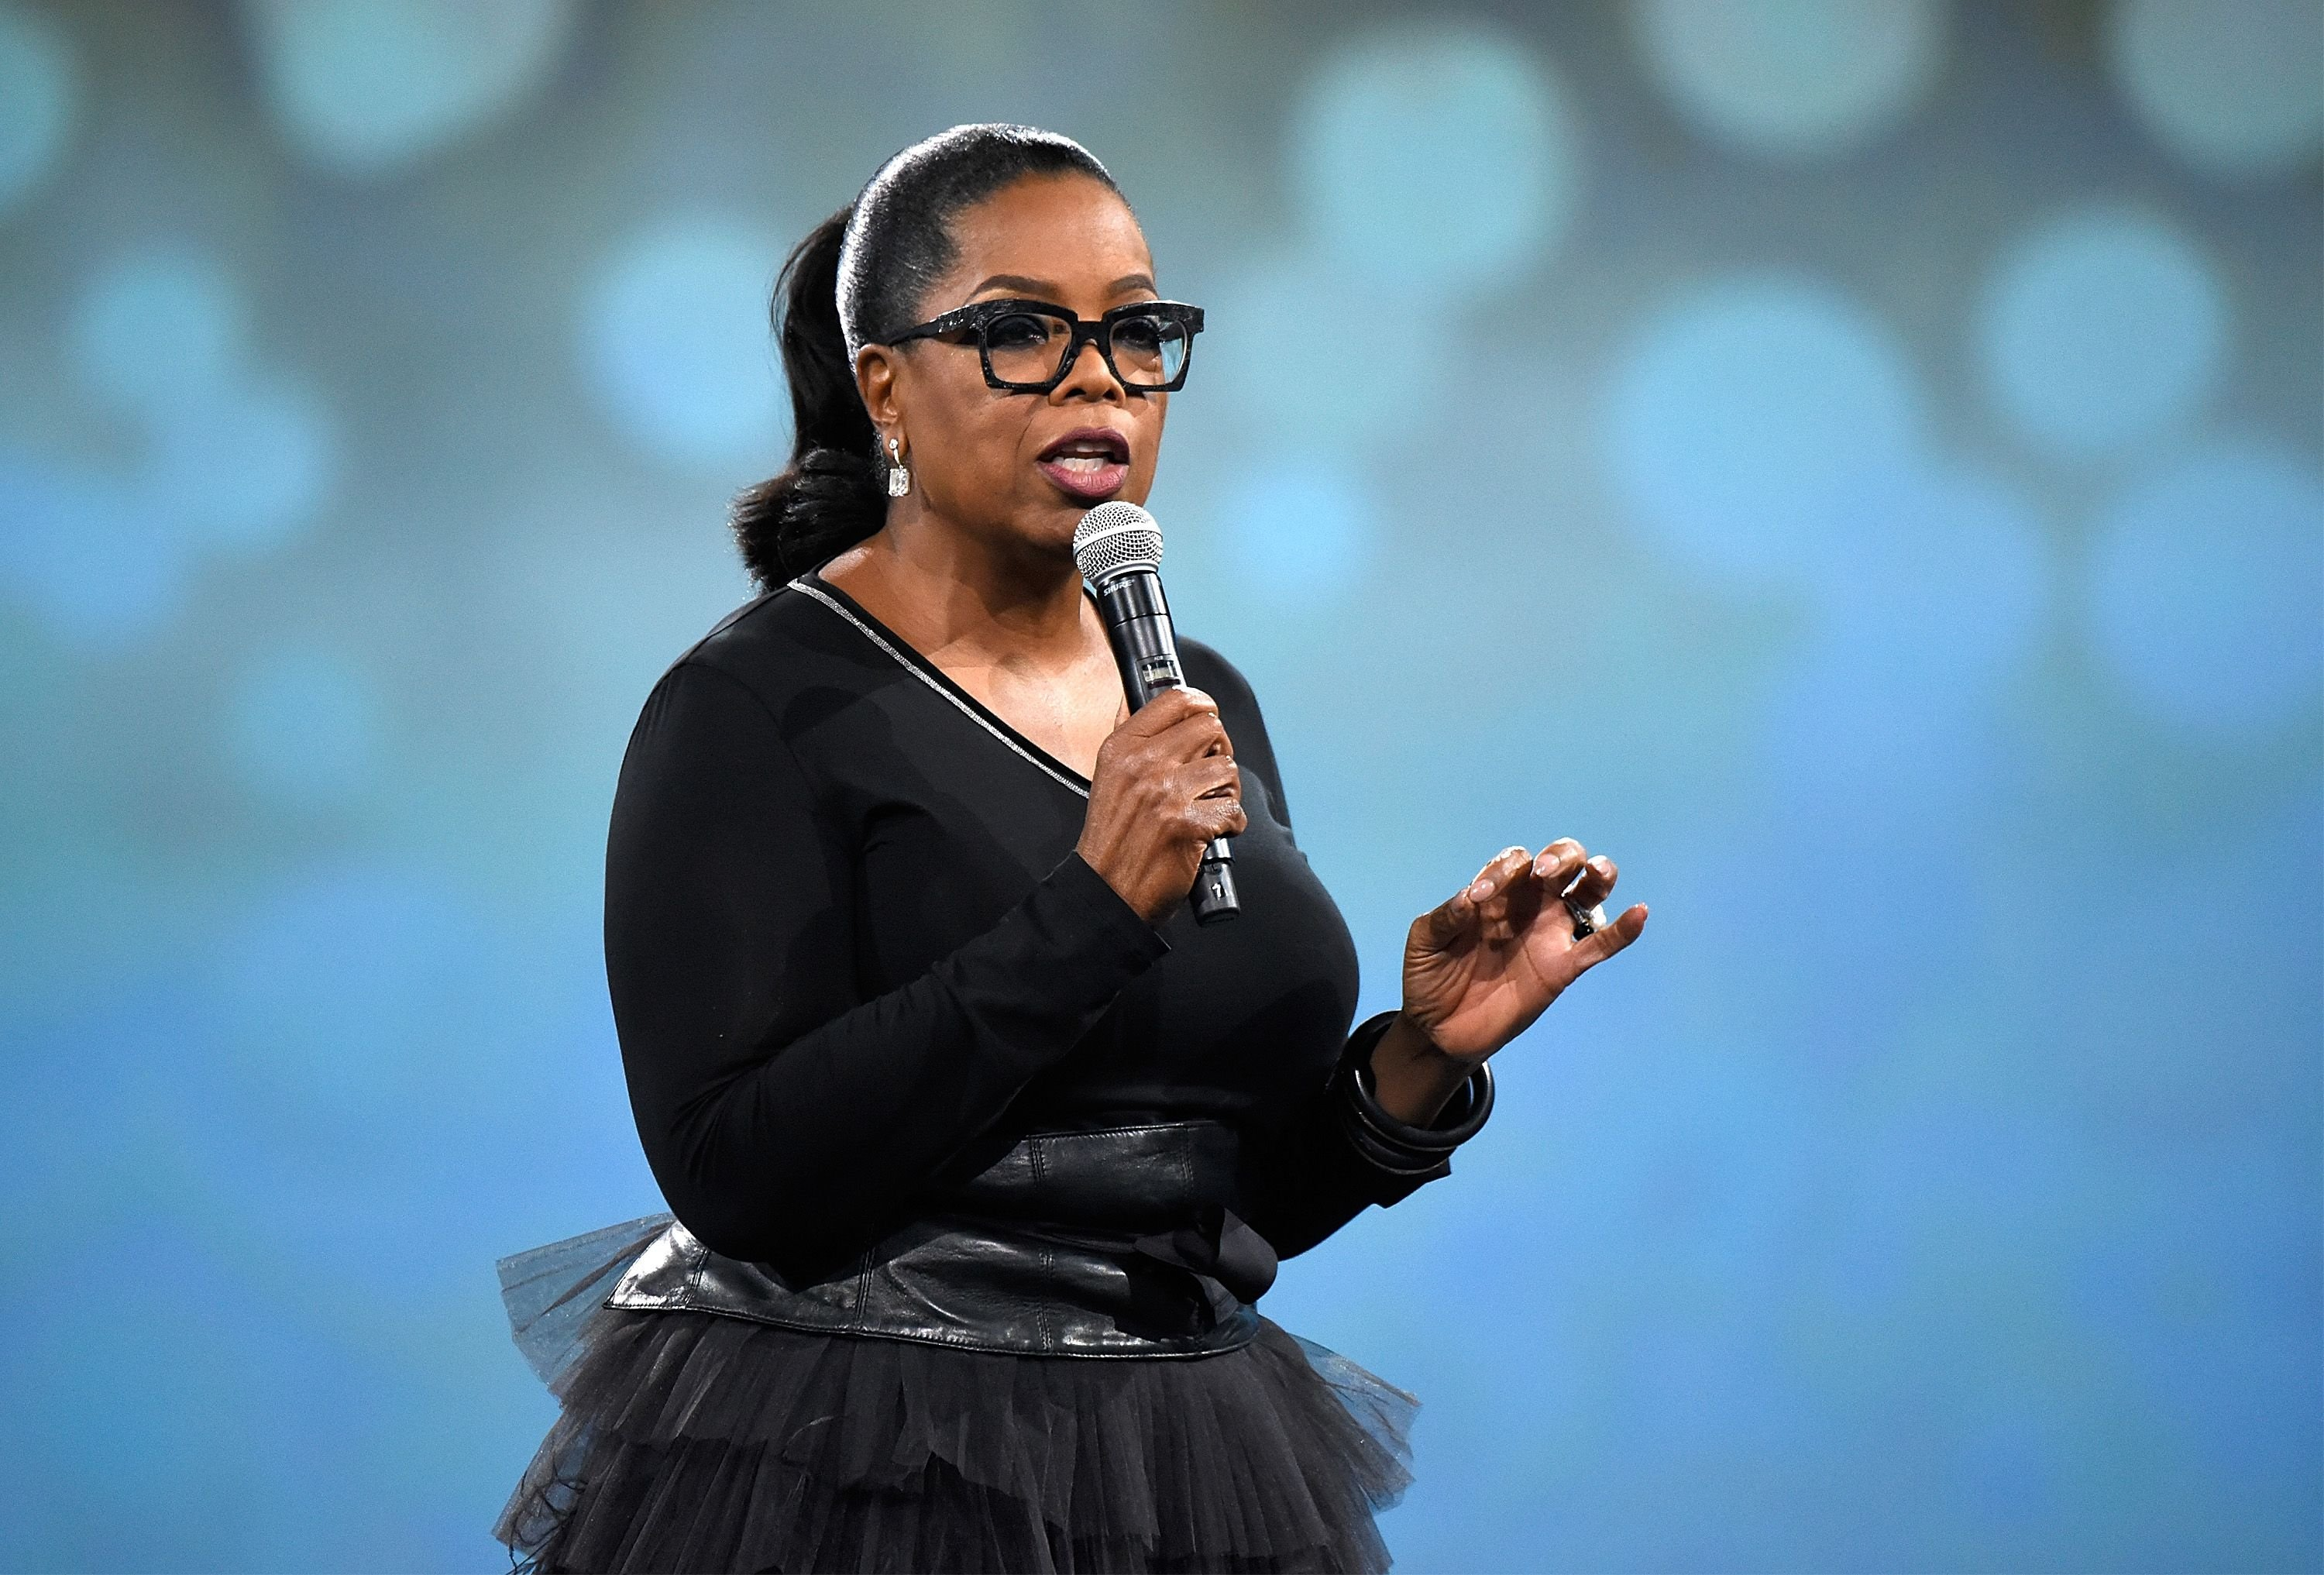 Oprah Winfrey speaking at The Robin Hood Foundation's 2018 benefit event on May 14, 2018. | Photo: Getty Images